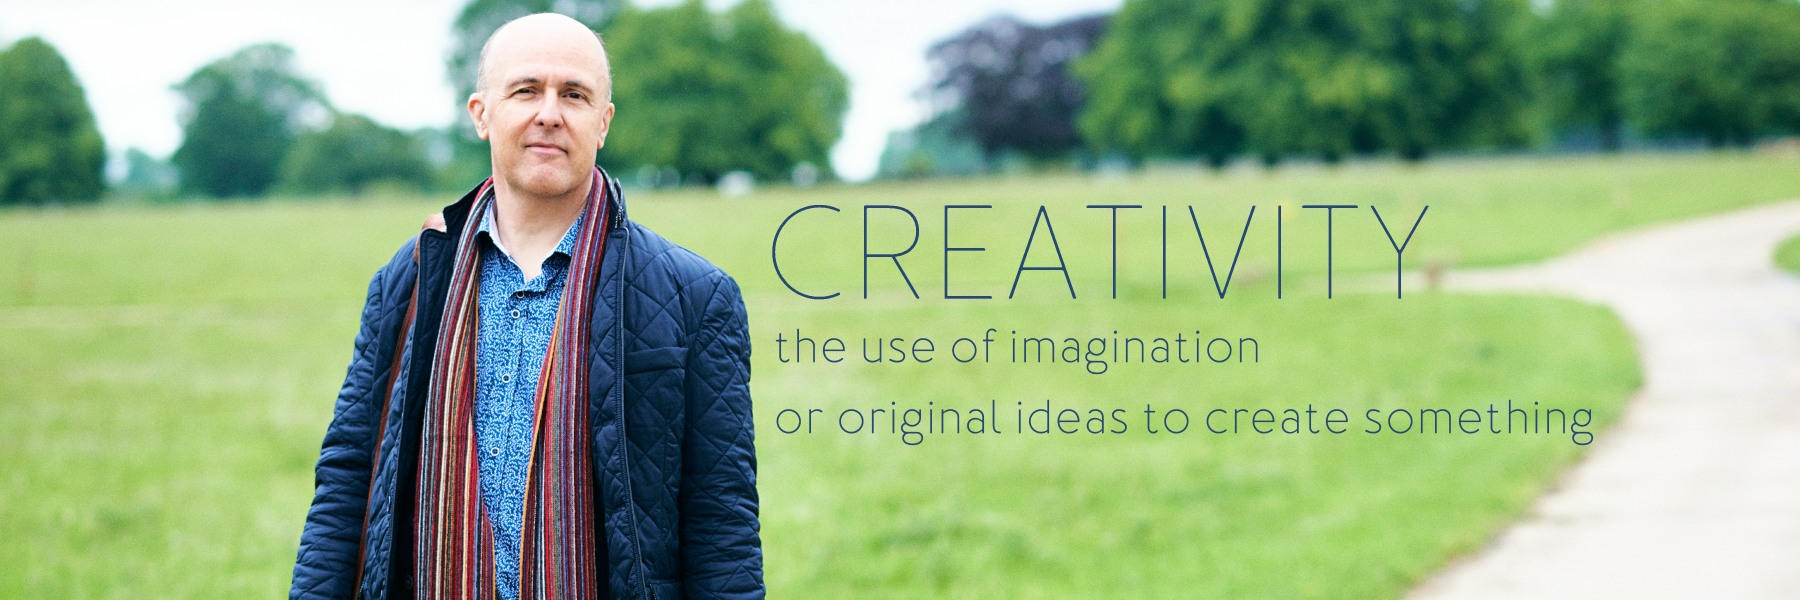 Digital Alchemist - Creative Services from The Digital Alchemist | Rutland Oakham UK